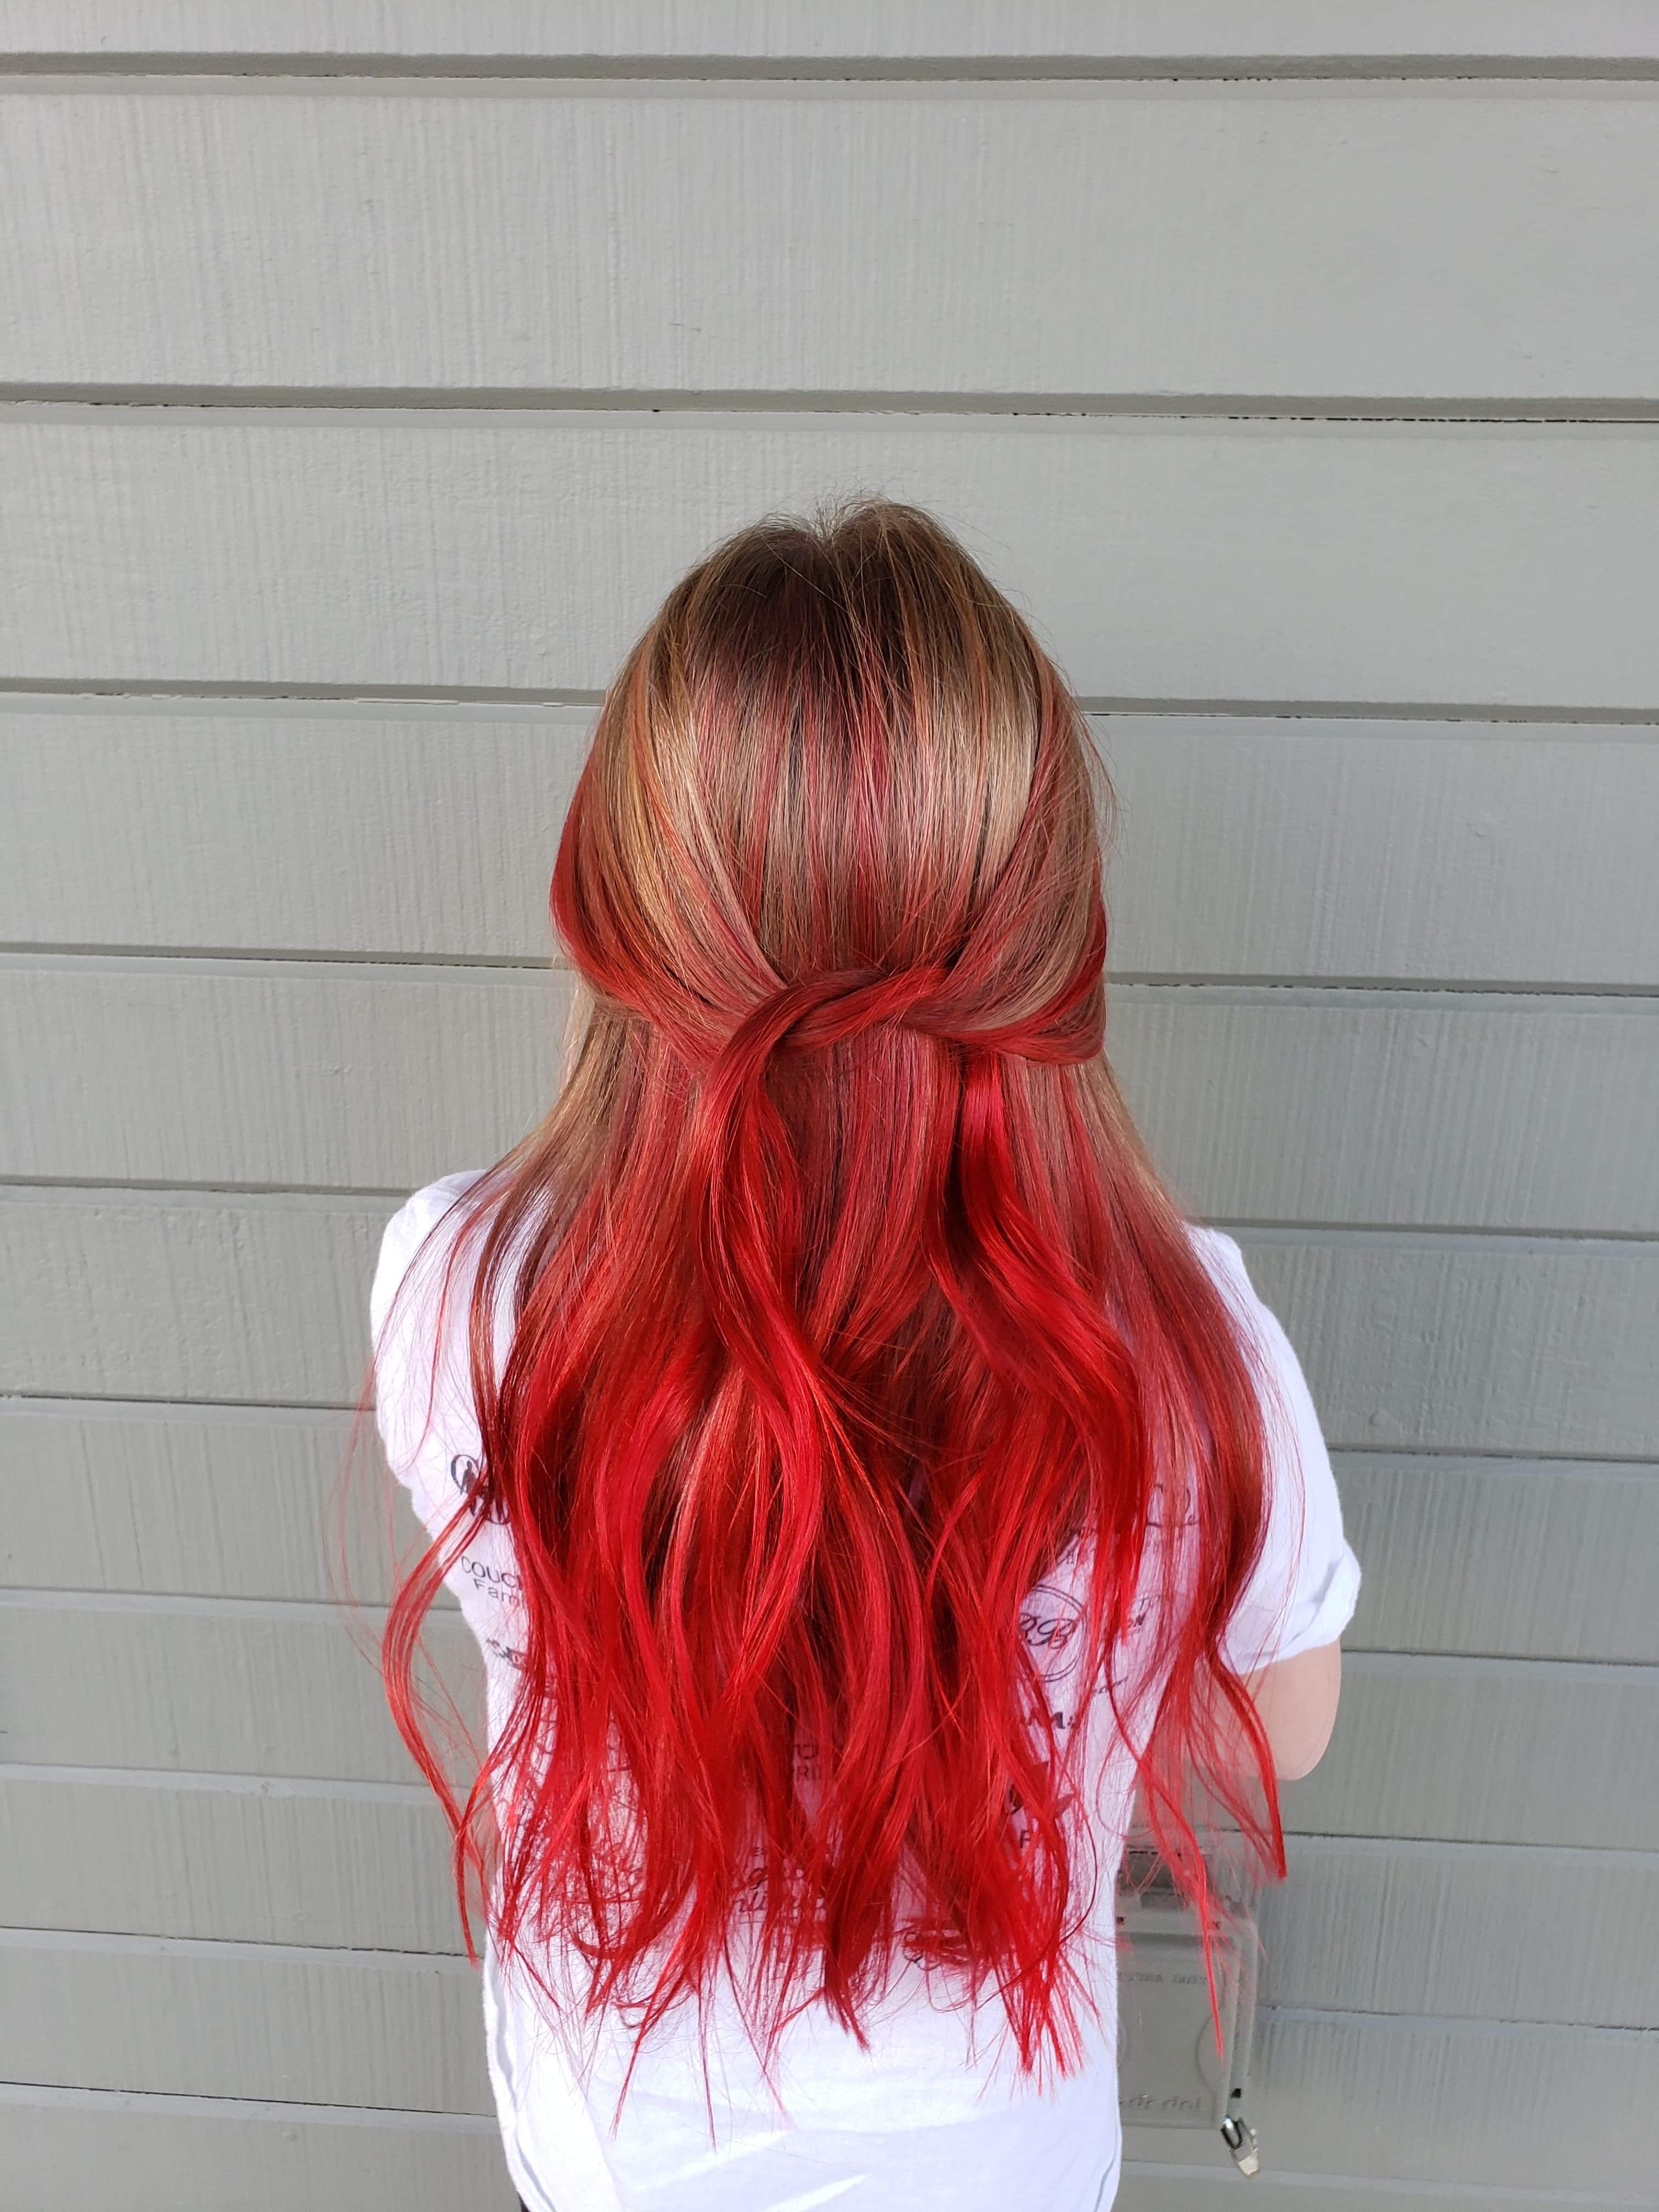 Woman with long blonde to red ombre hair over white shirt.